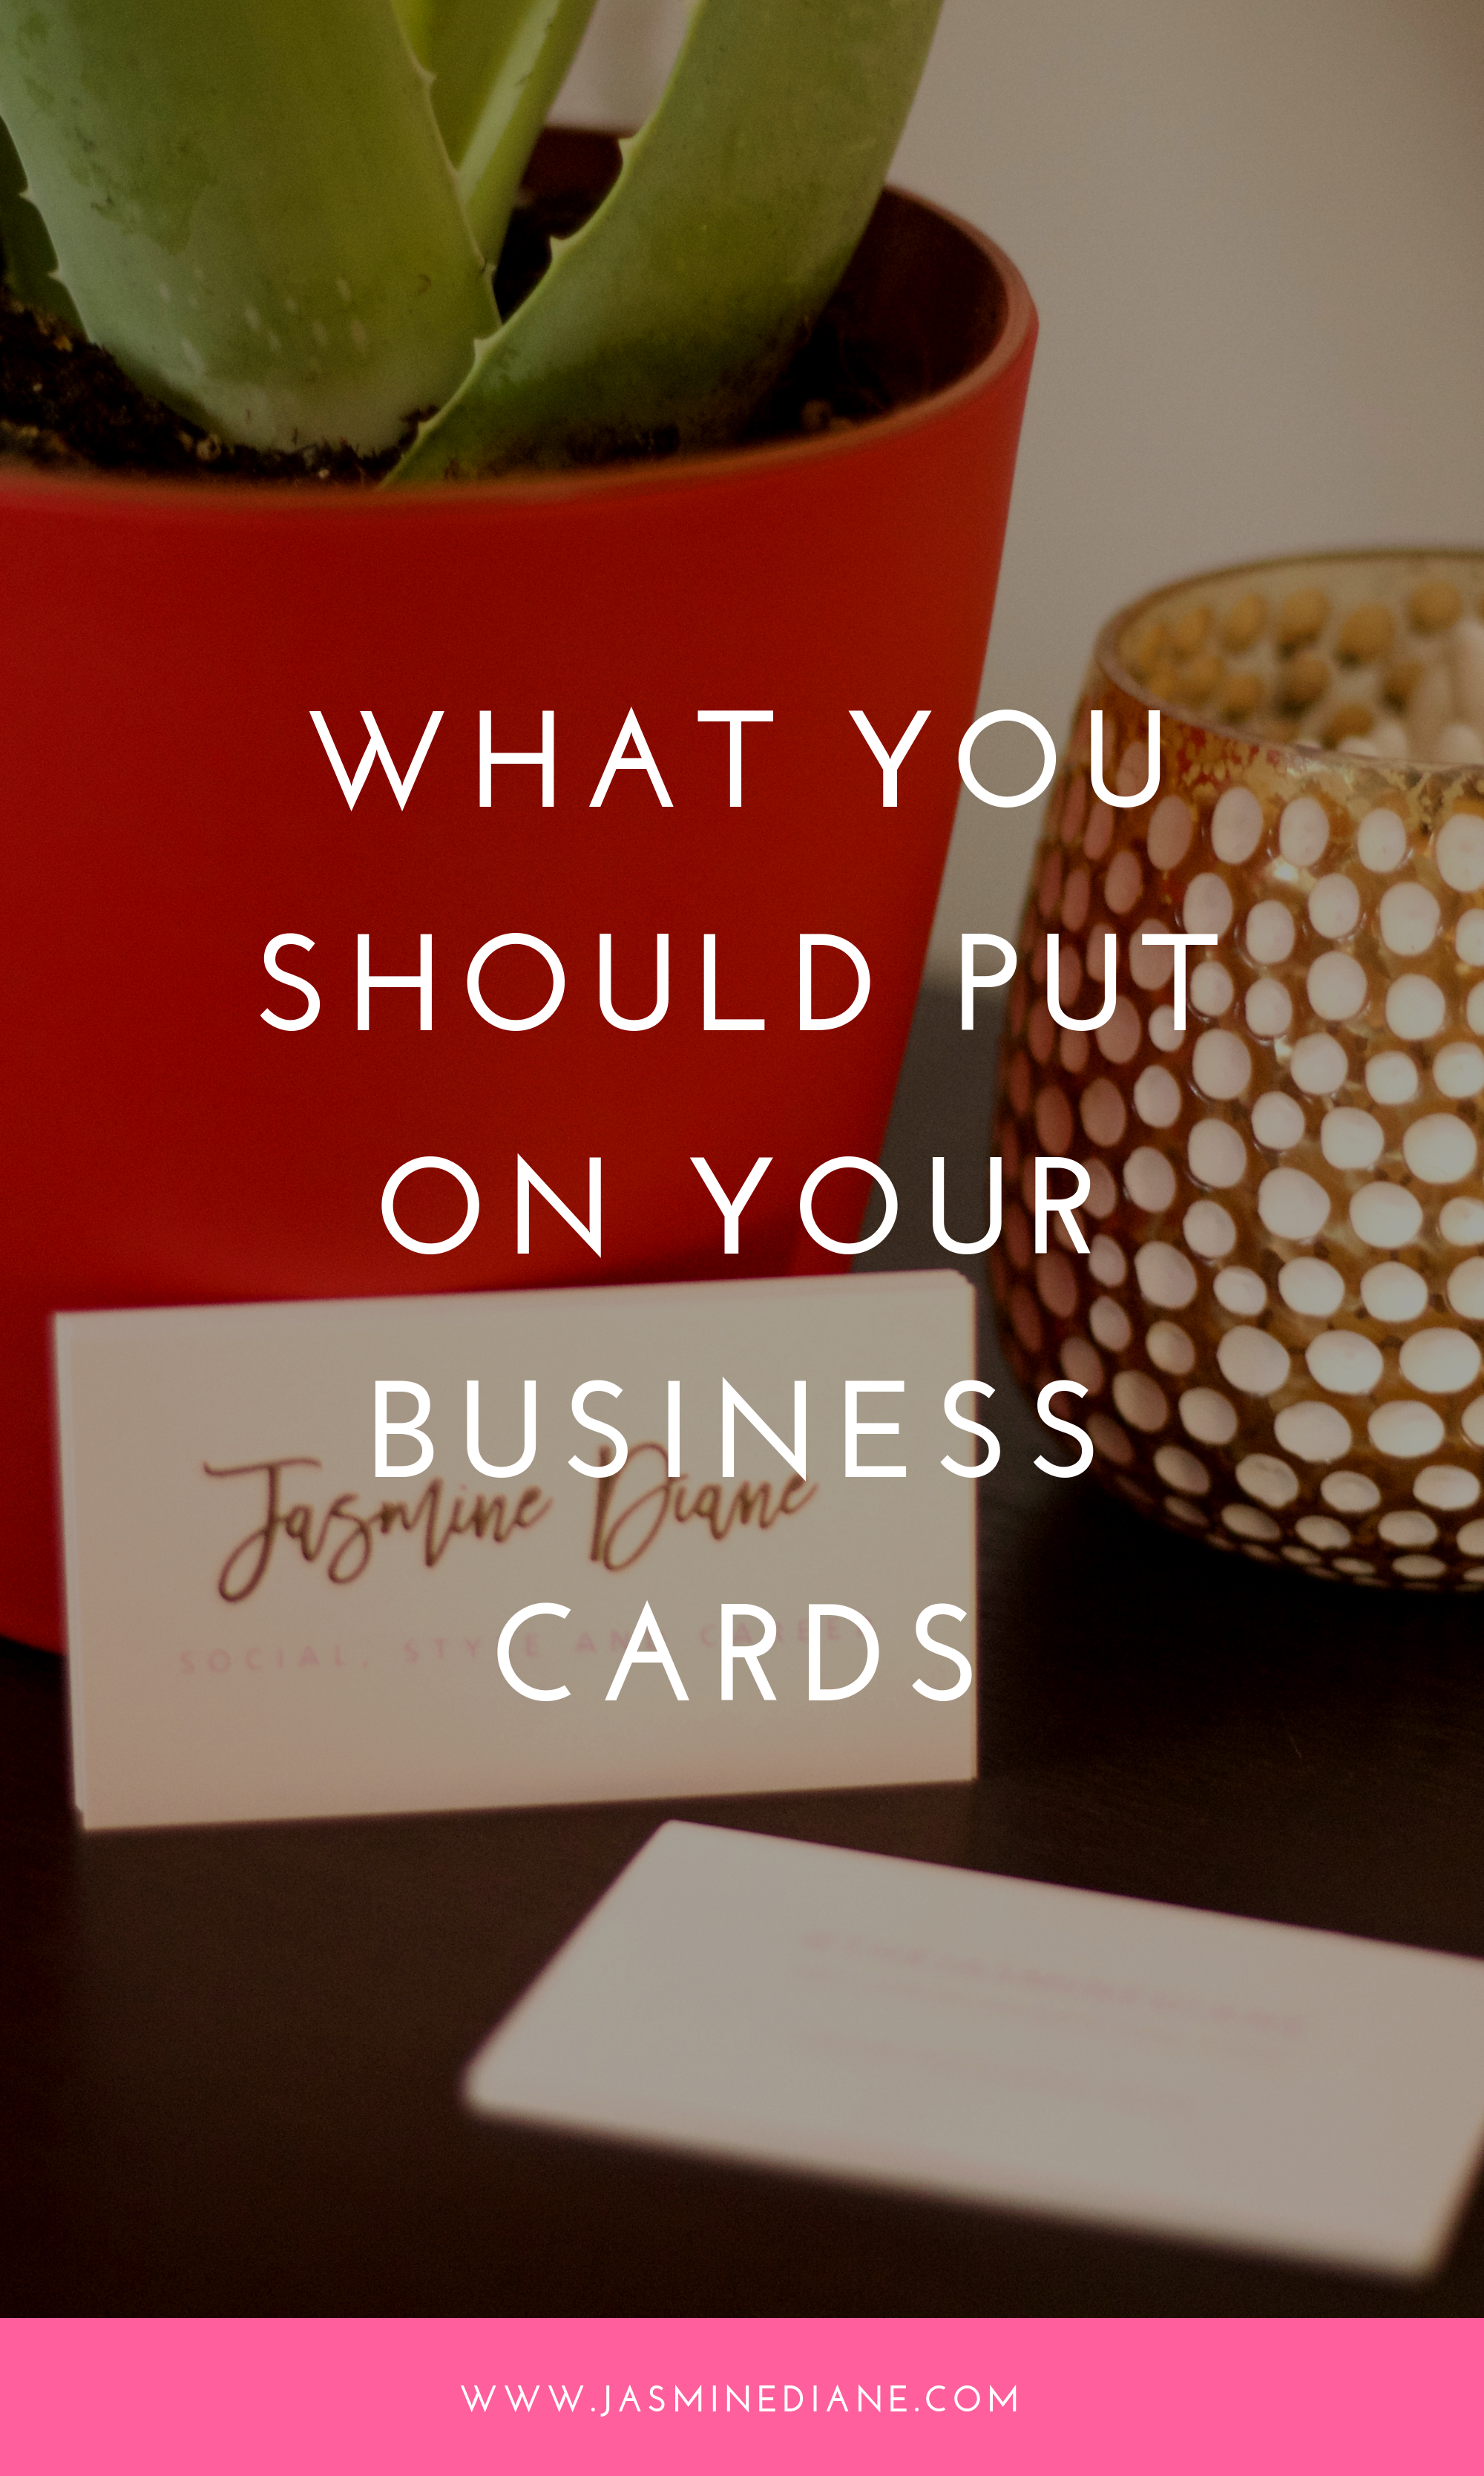 What You Should Put on Your Business Cards.png